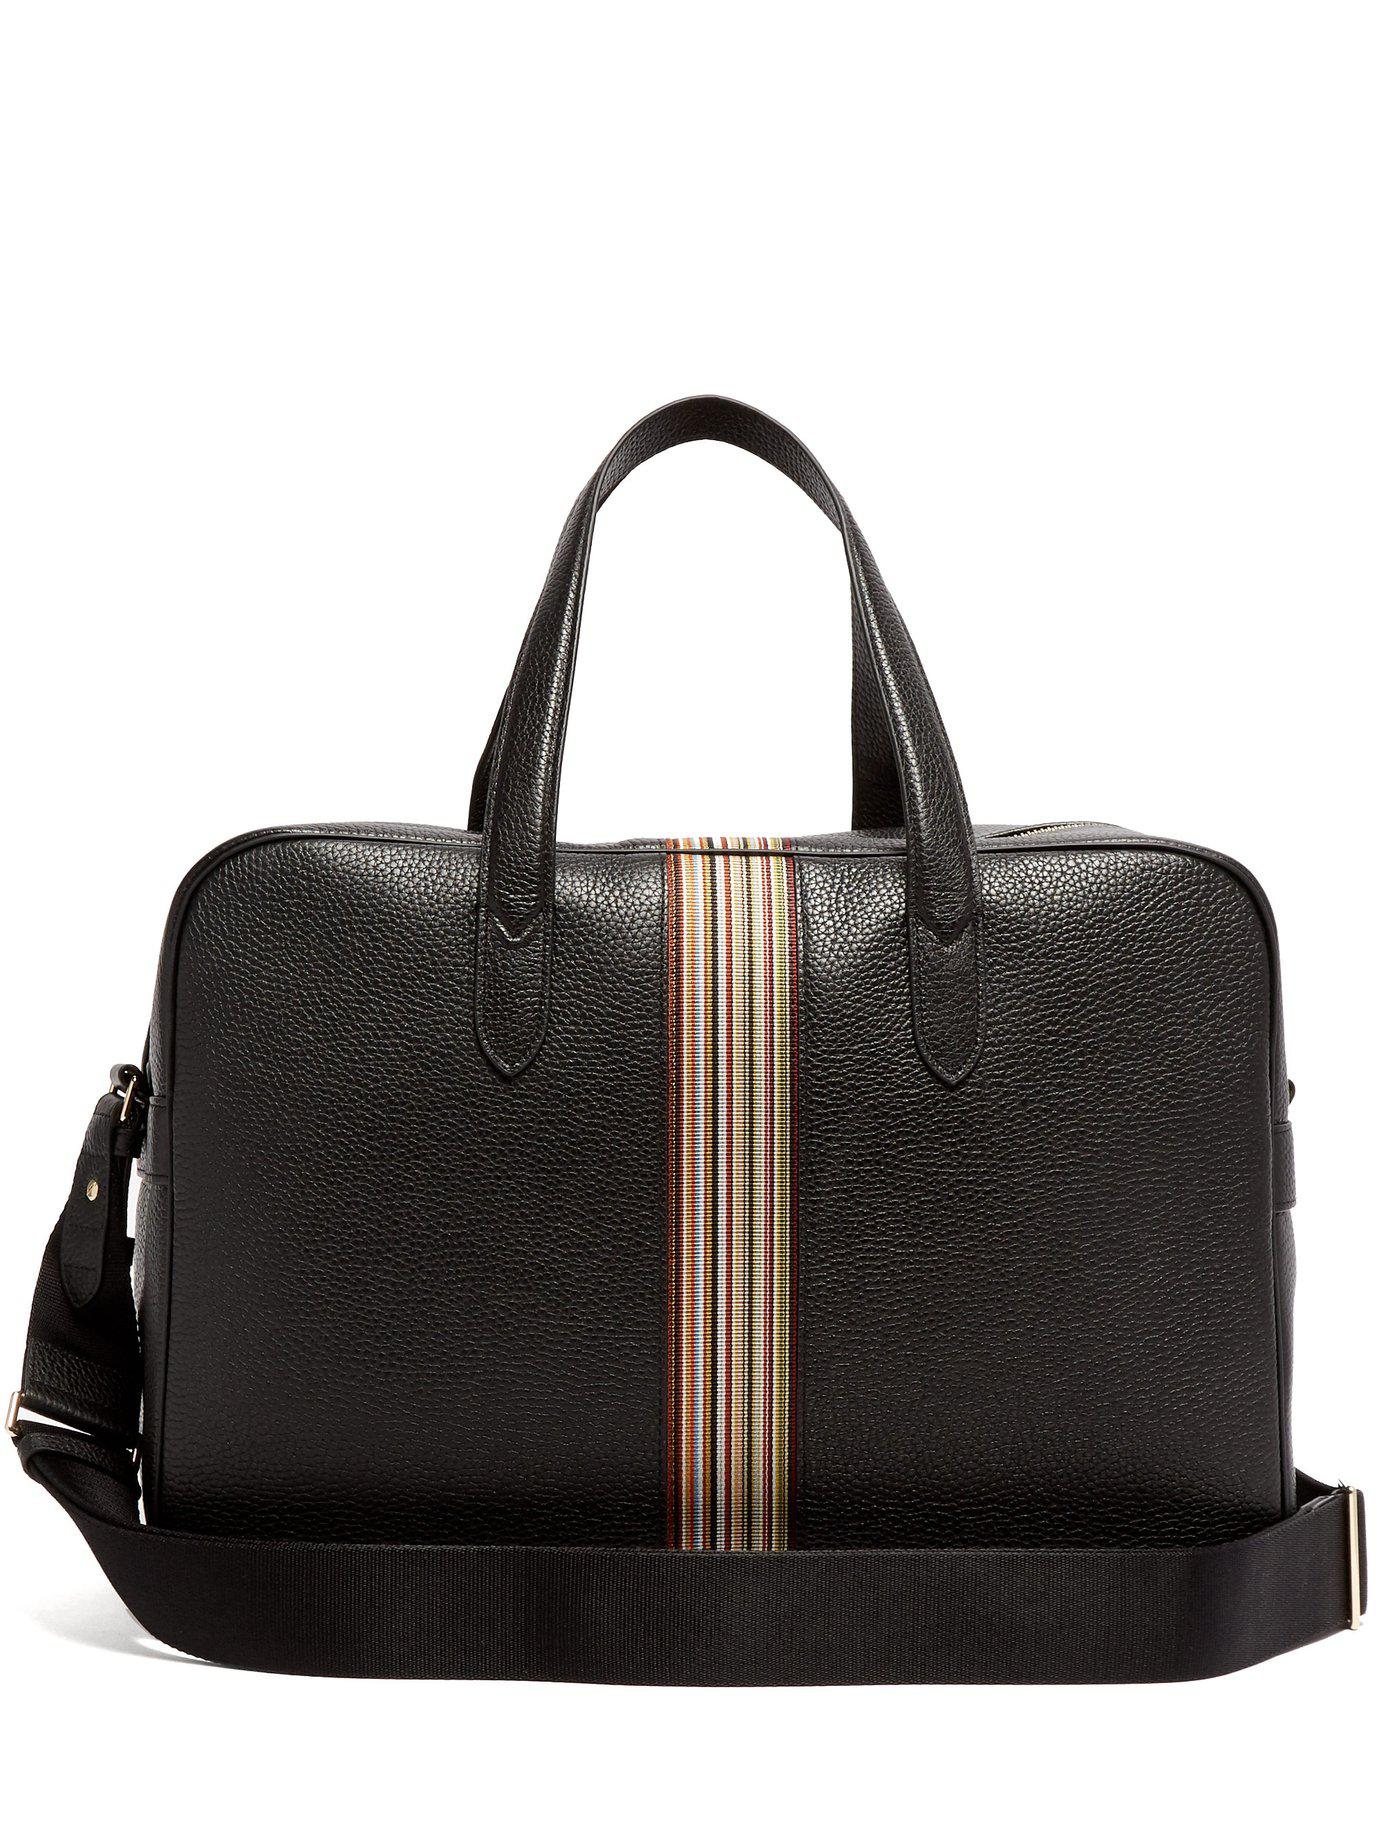 e4f88b15920 Lyst - Paul Smith Signature Stripe Leather Weekend Bag in Black for Men